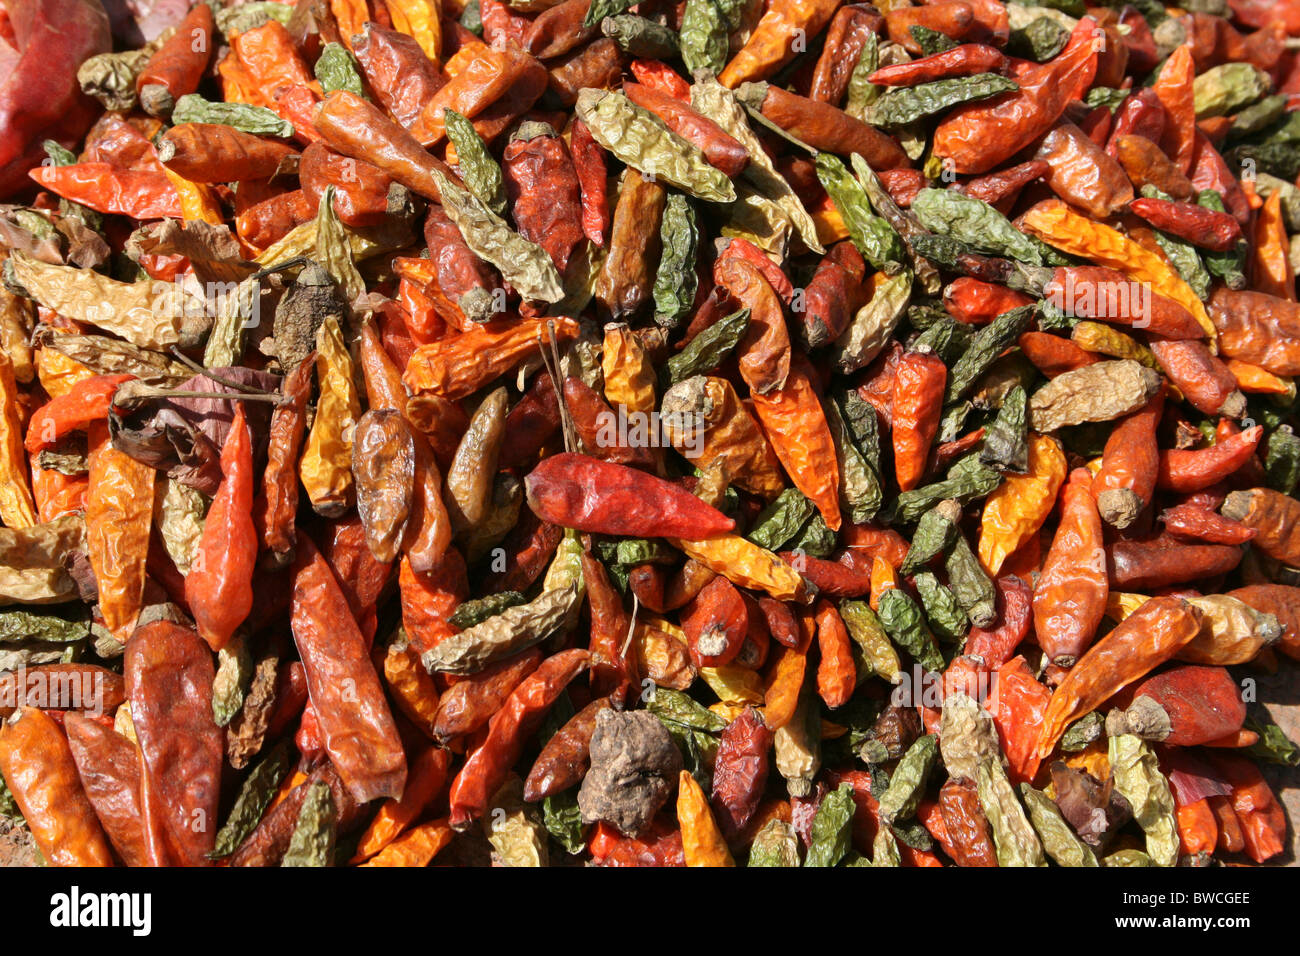 Colourful Chillies For Sale At The Key Afer Market, Omo Valley, Ethiopia - Stock Image